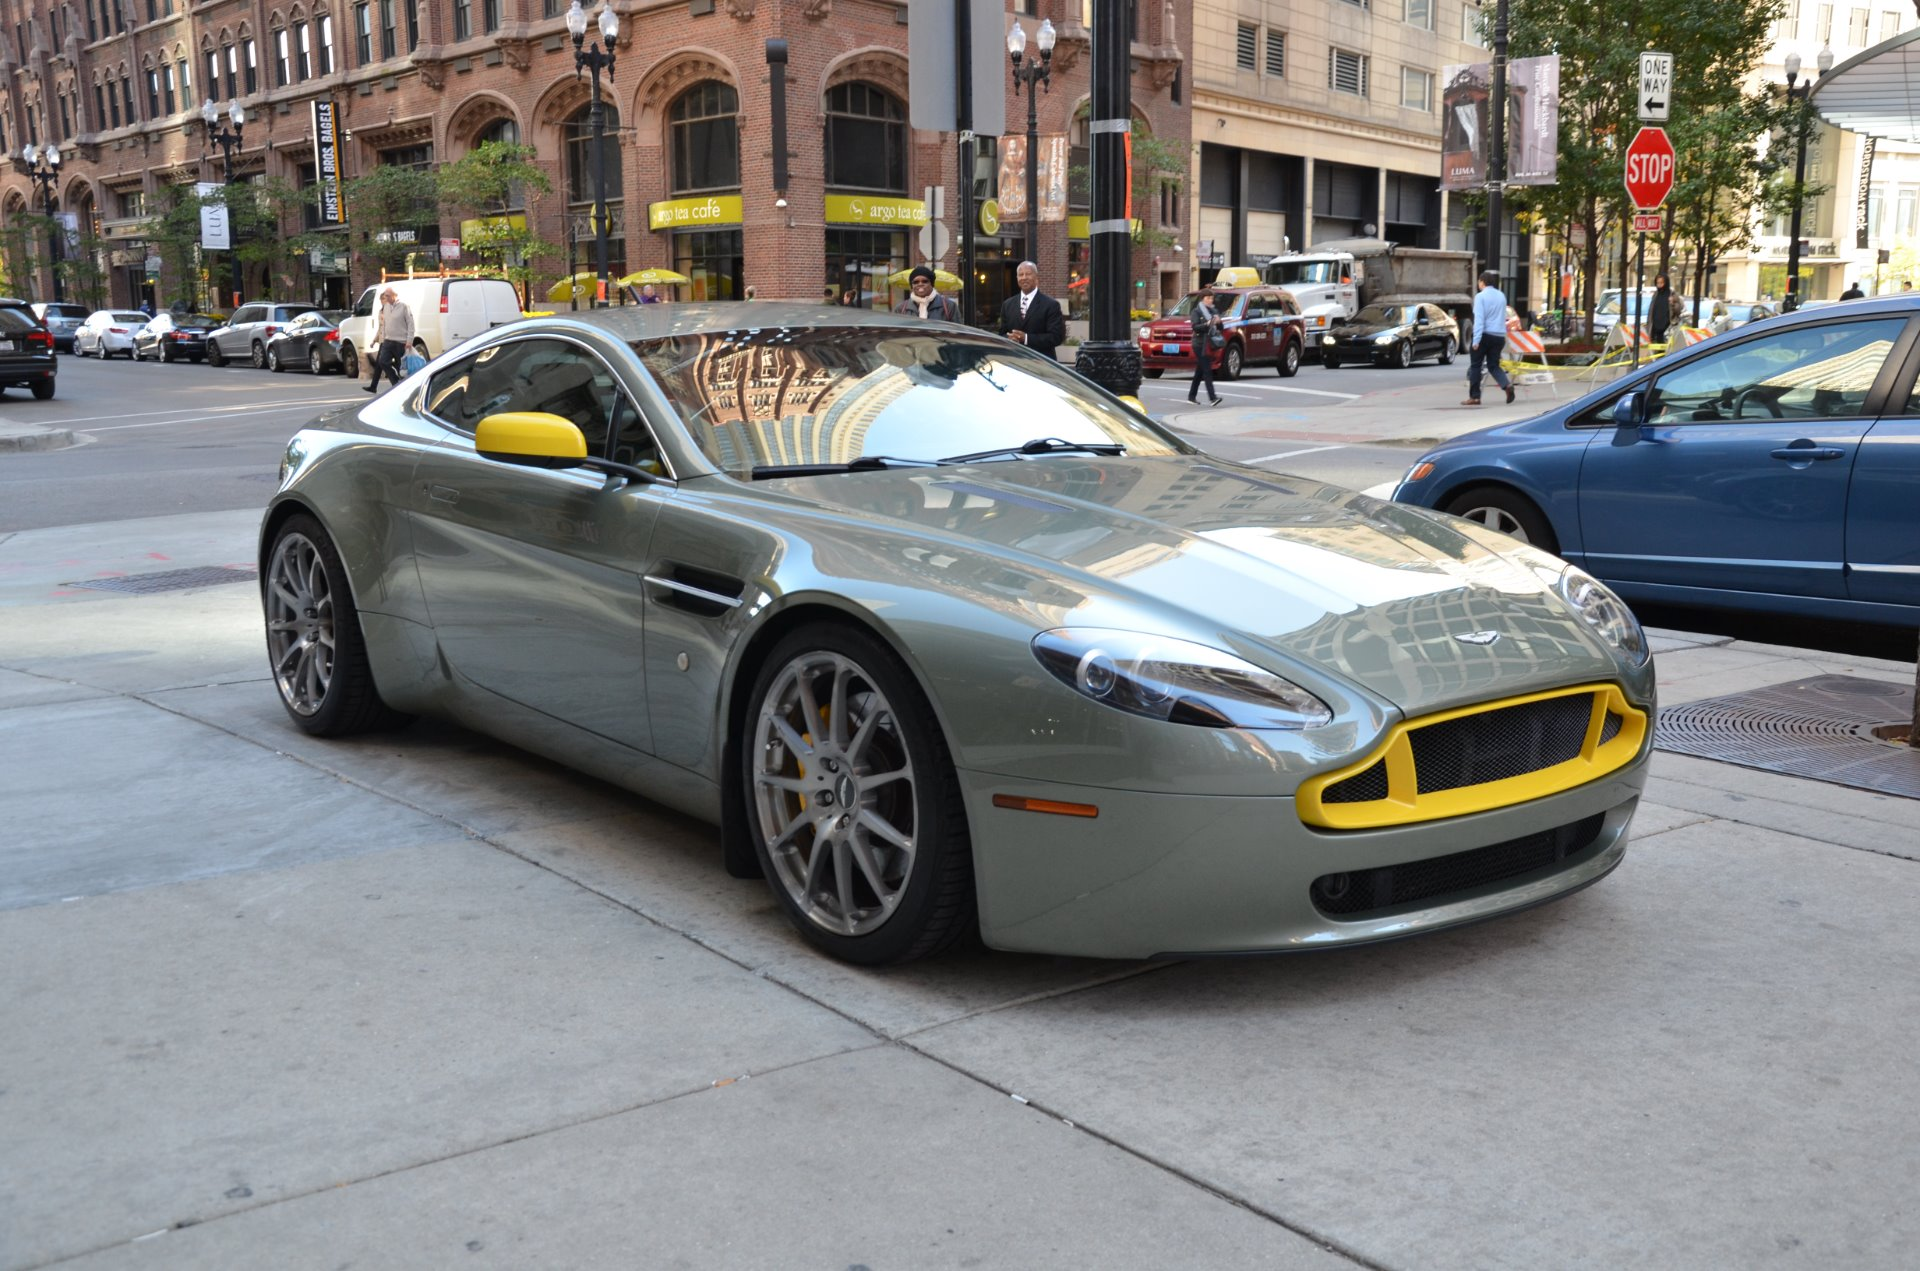 Aston Martin V Vantage Stock LAA For Sale Near Chicago - 2007 aston martin v8 vantage